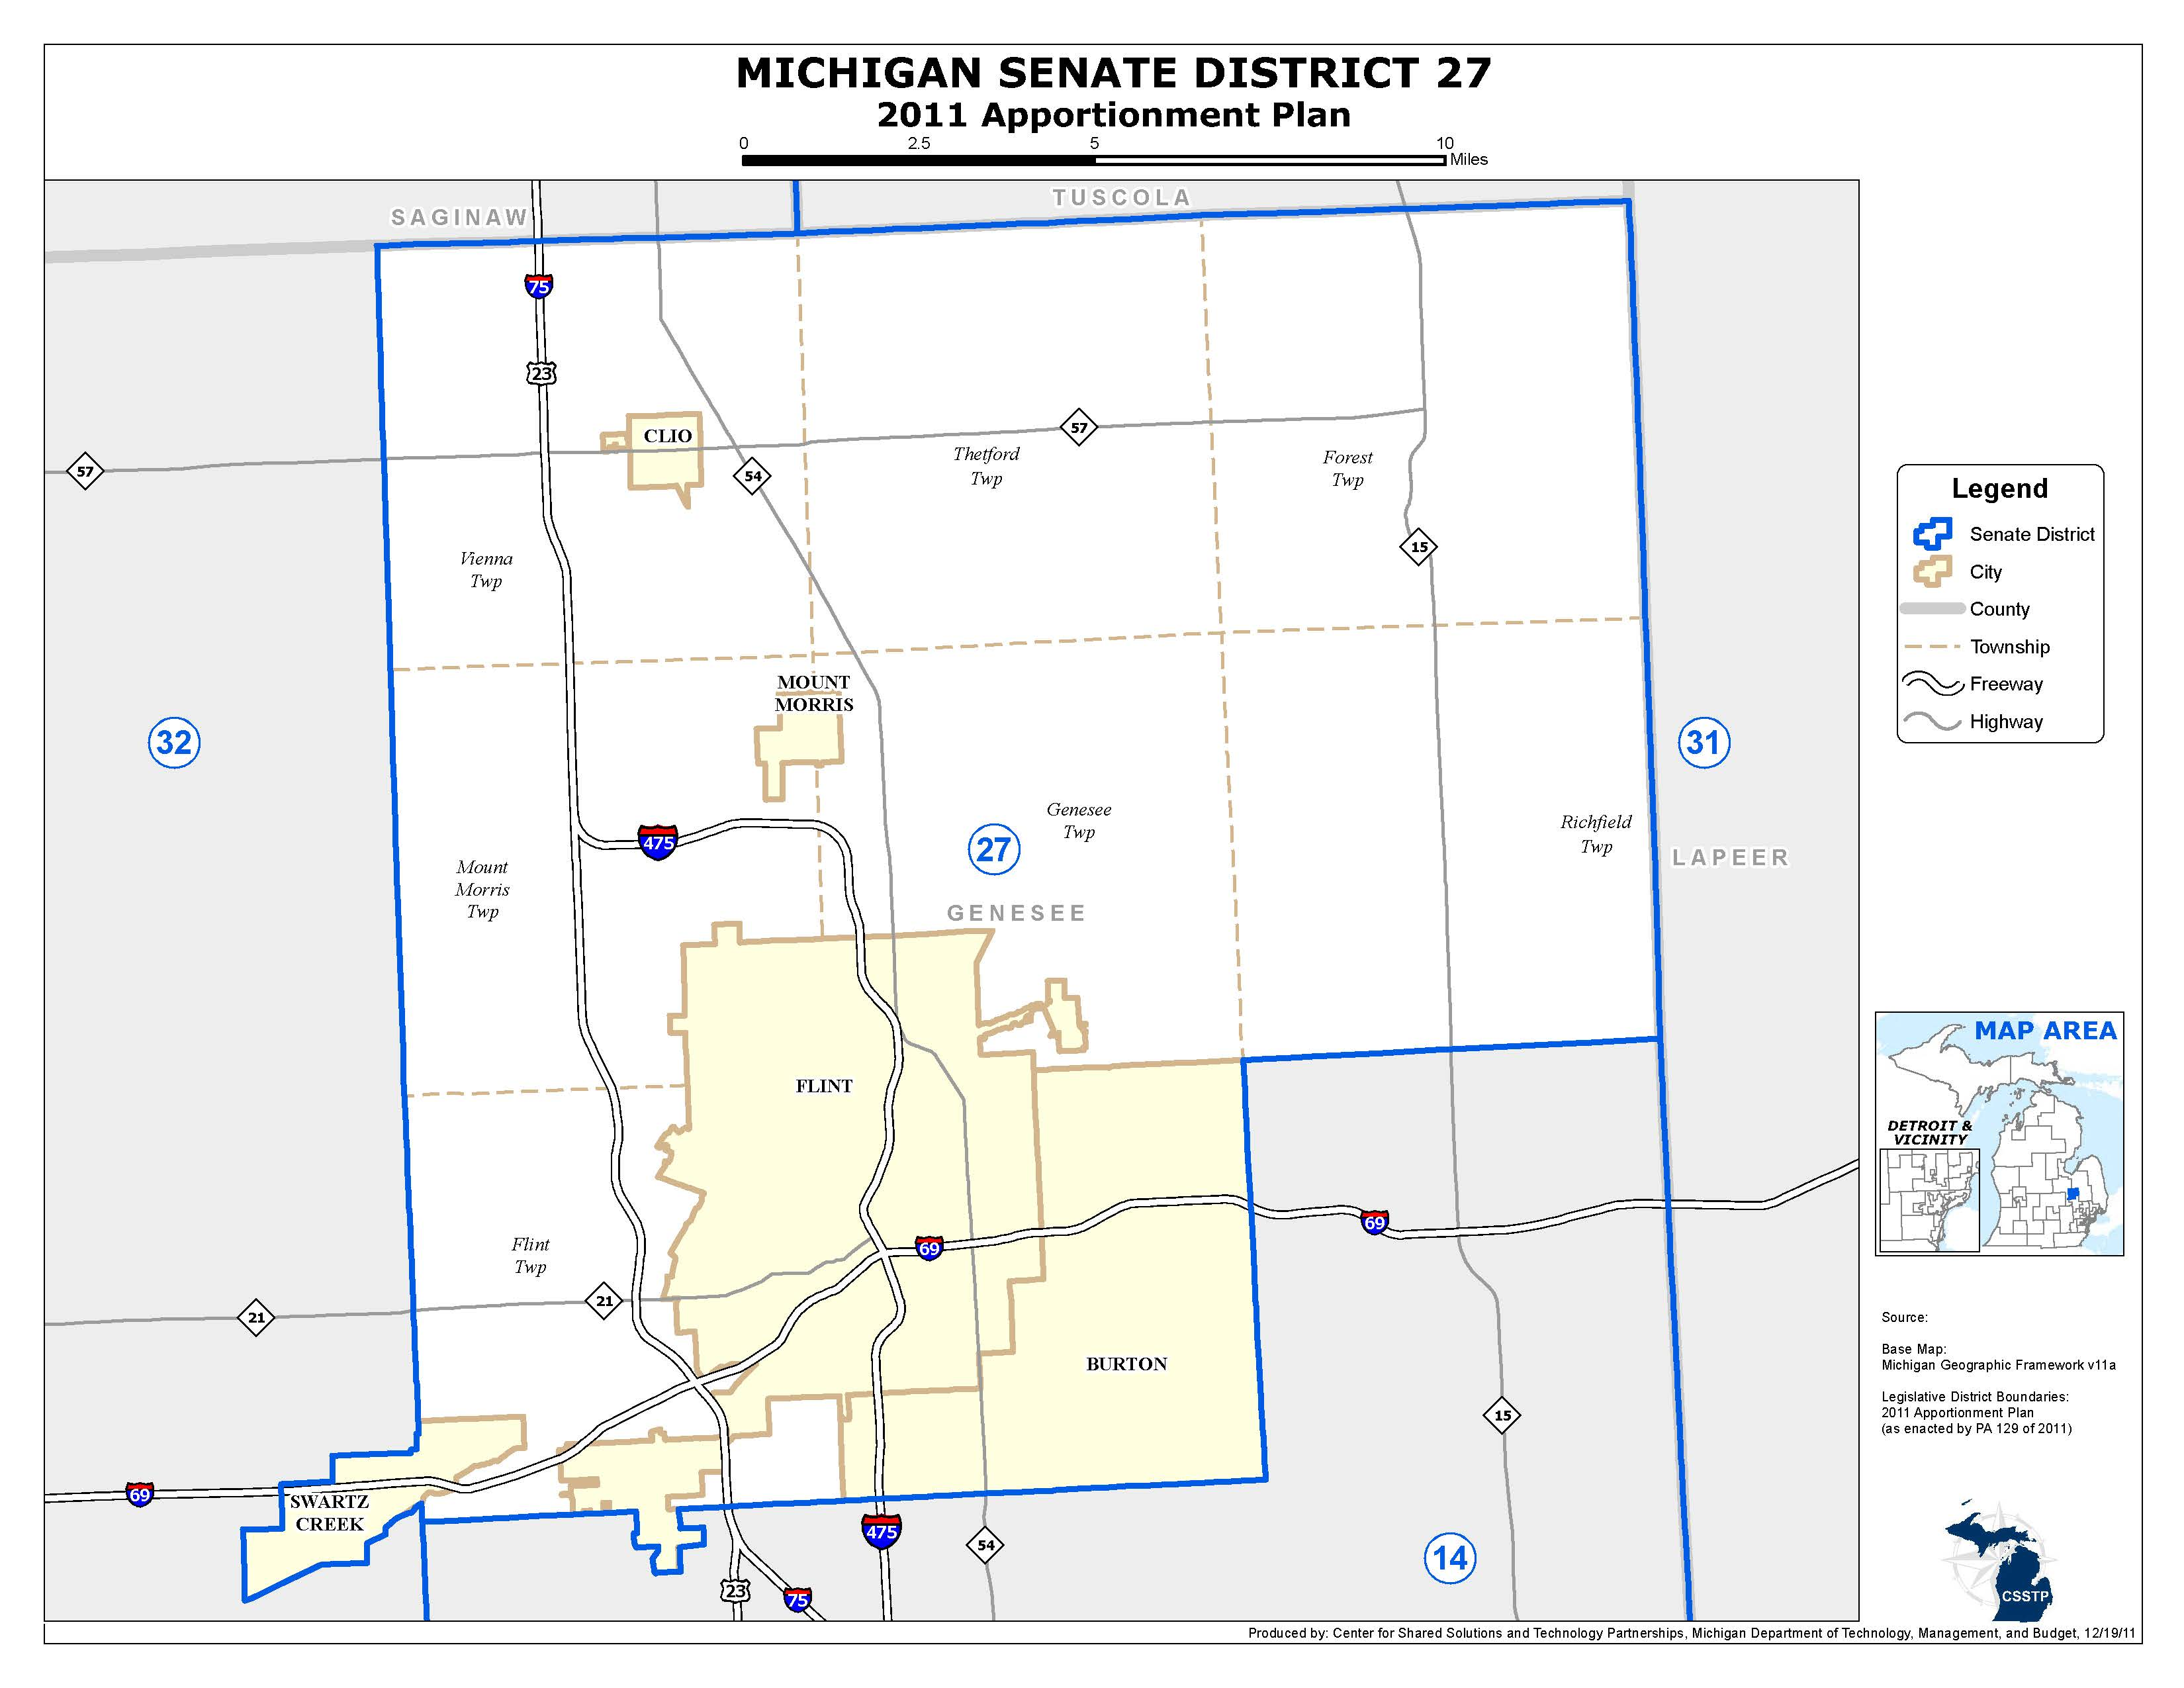 Michigan Senate District 27